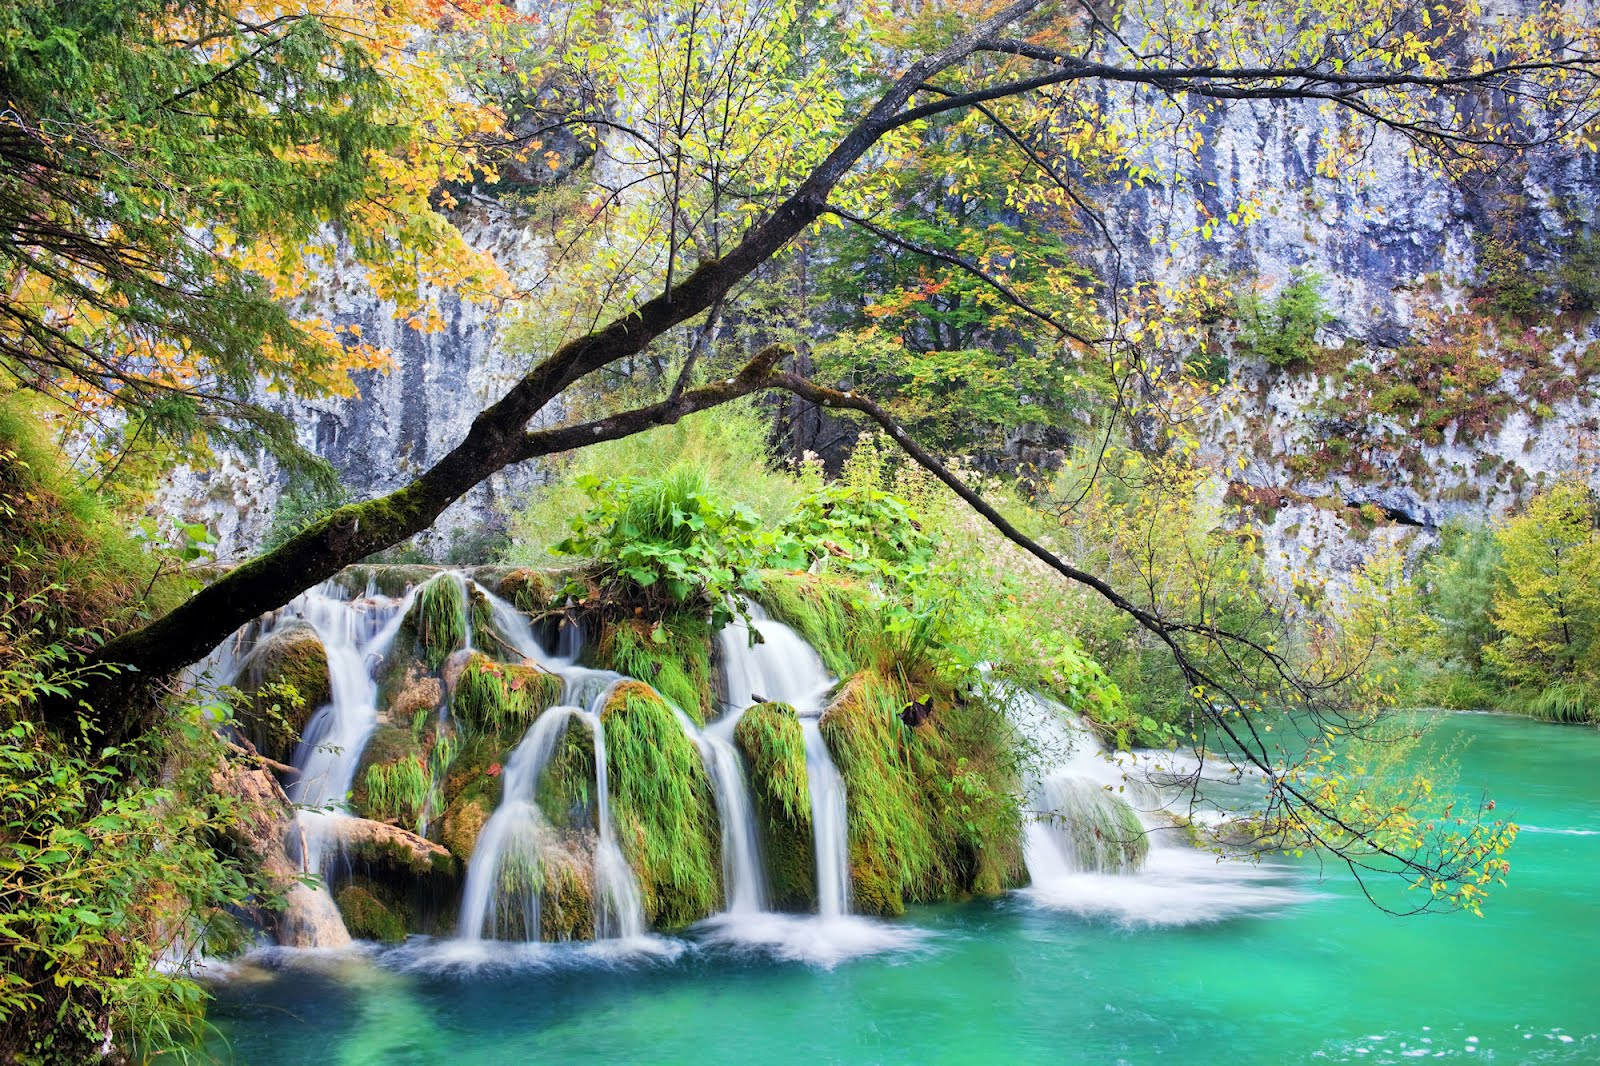 52 Amazing Photos of Plitvice Lakes National Park Places  - plitvice lakes national park waterfall wallpapers